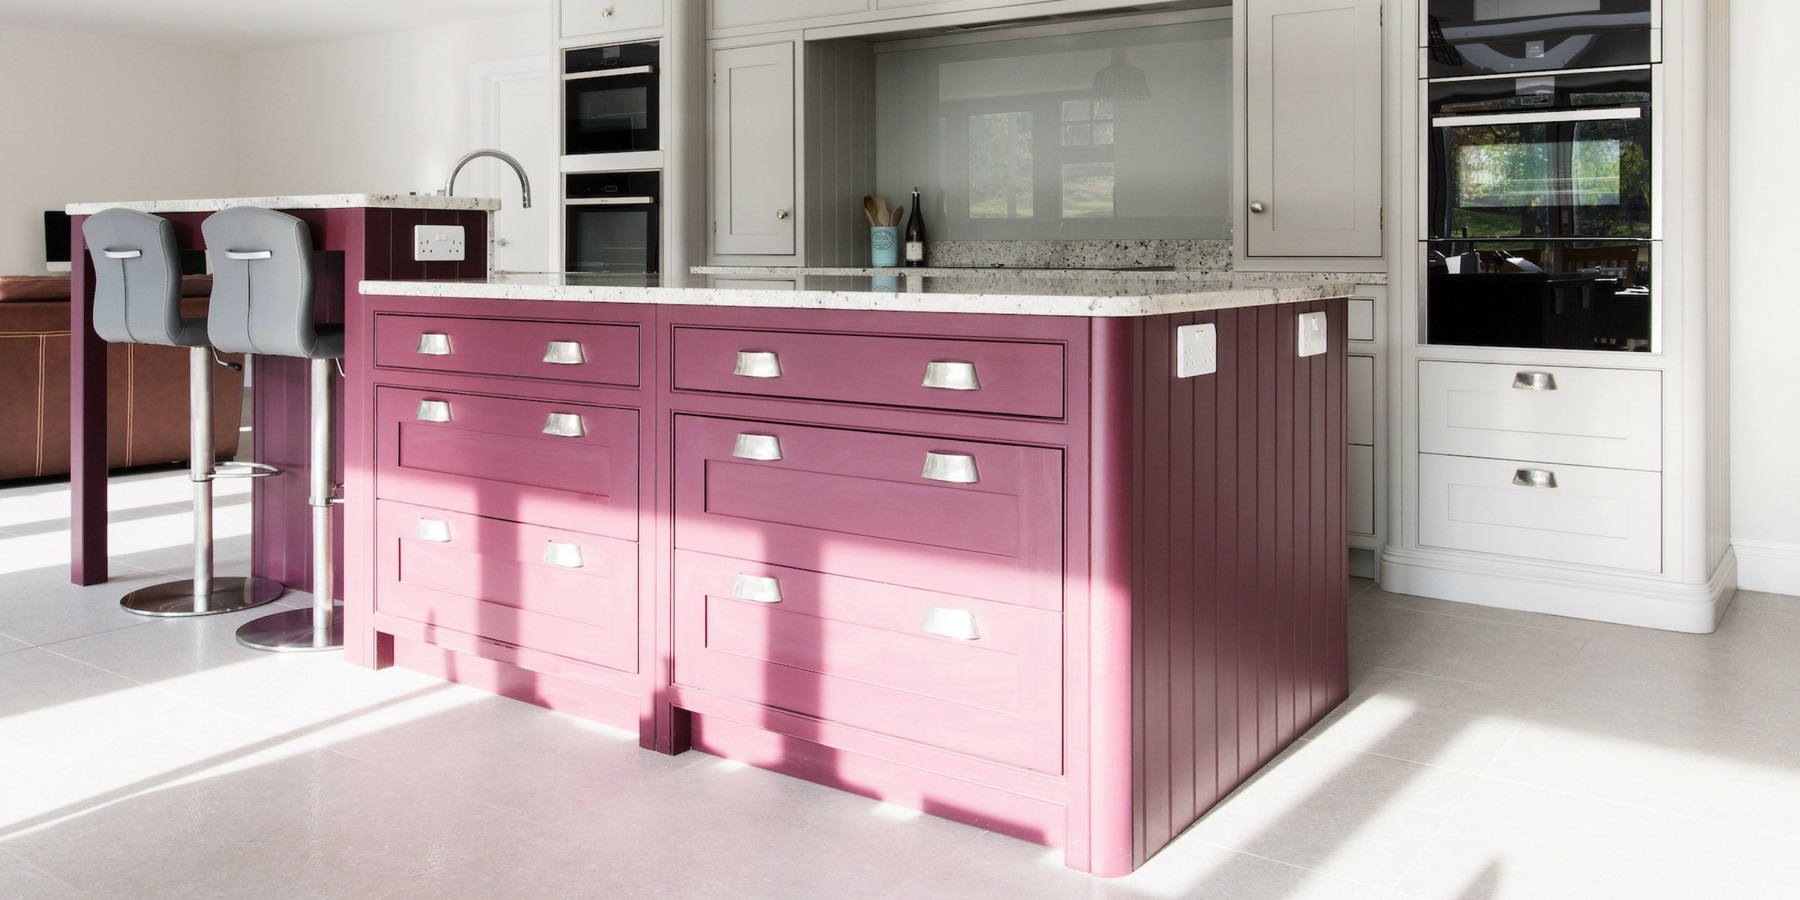 Burlanes Interiors - Multi Functional Family Kitchen